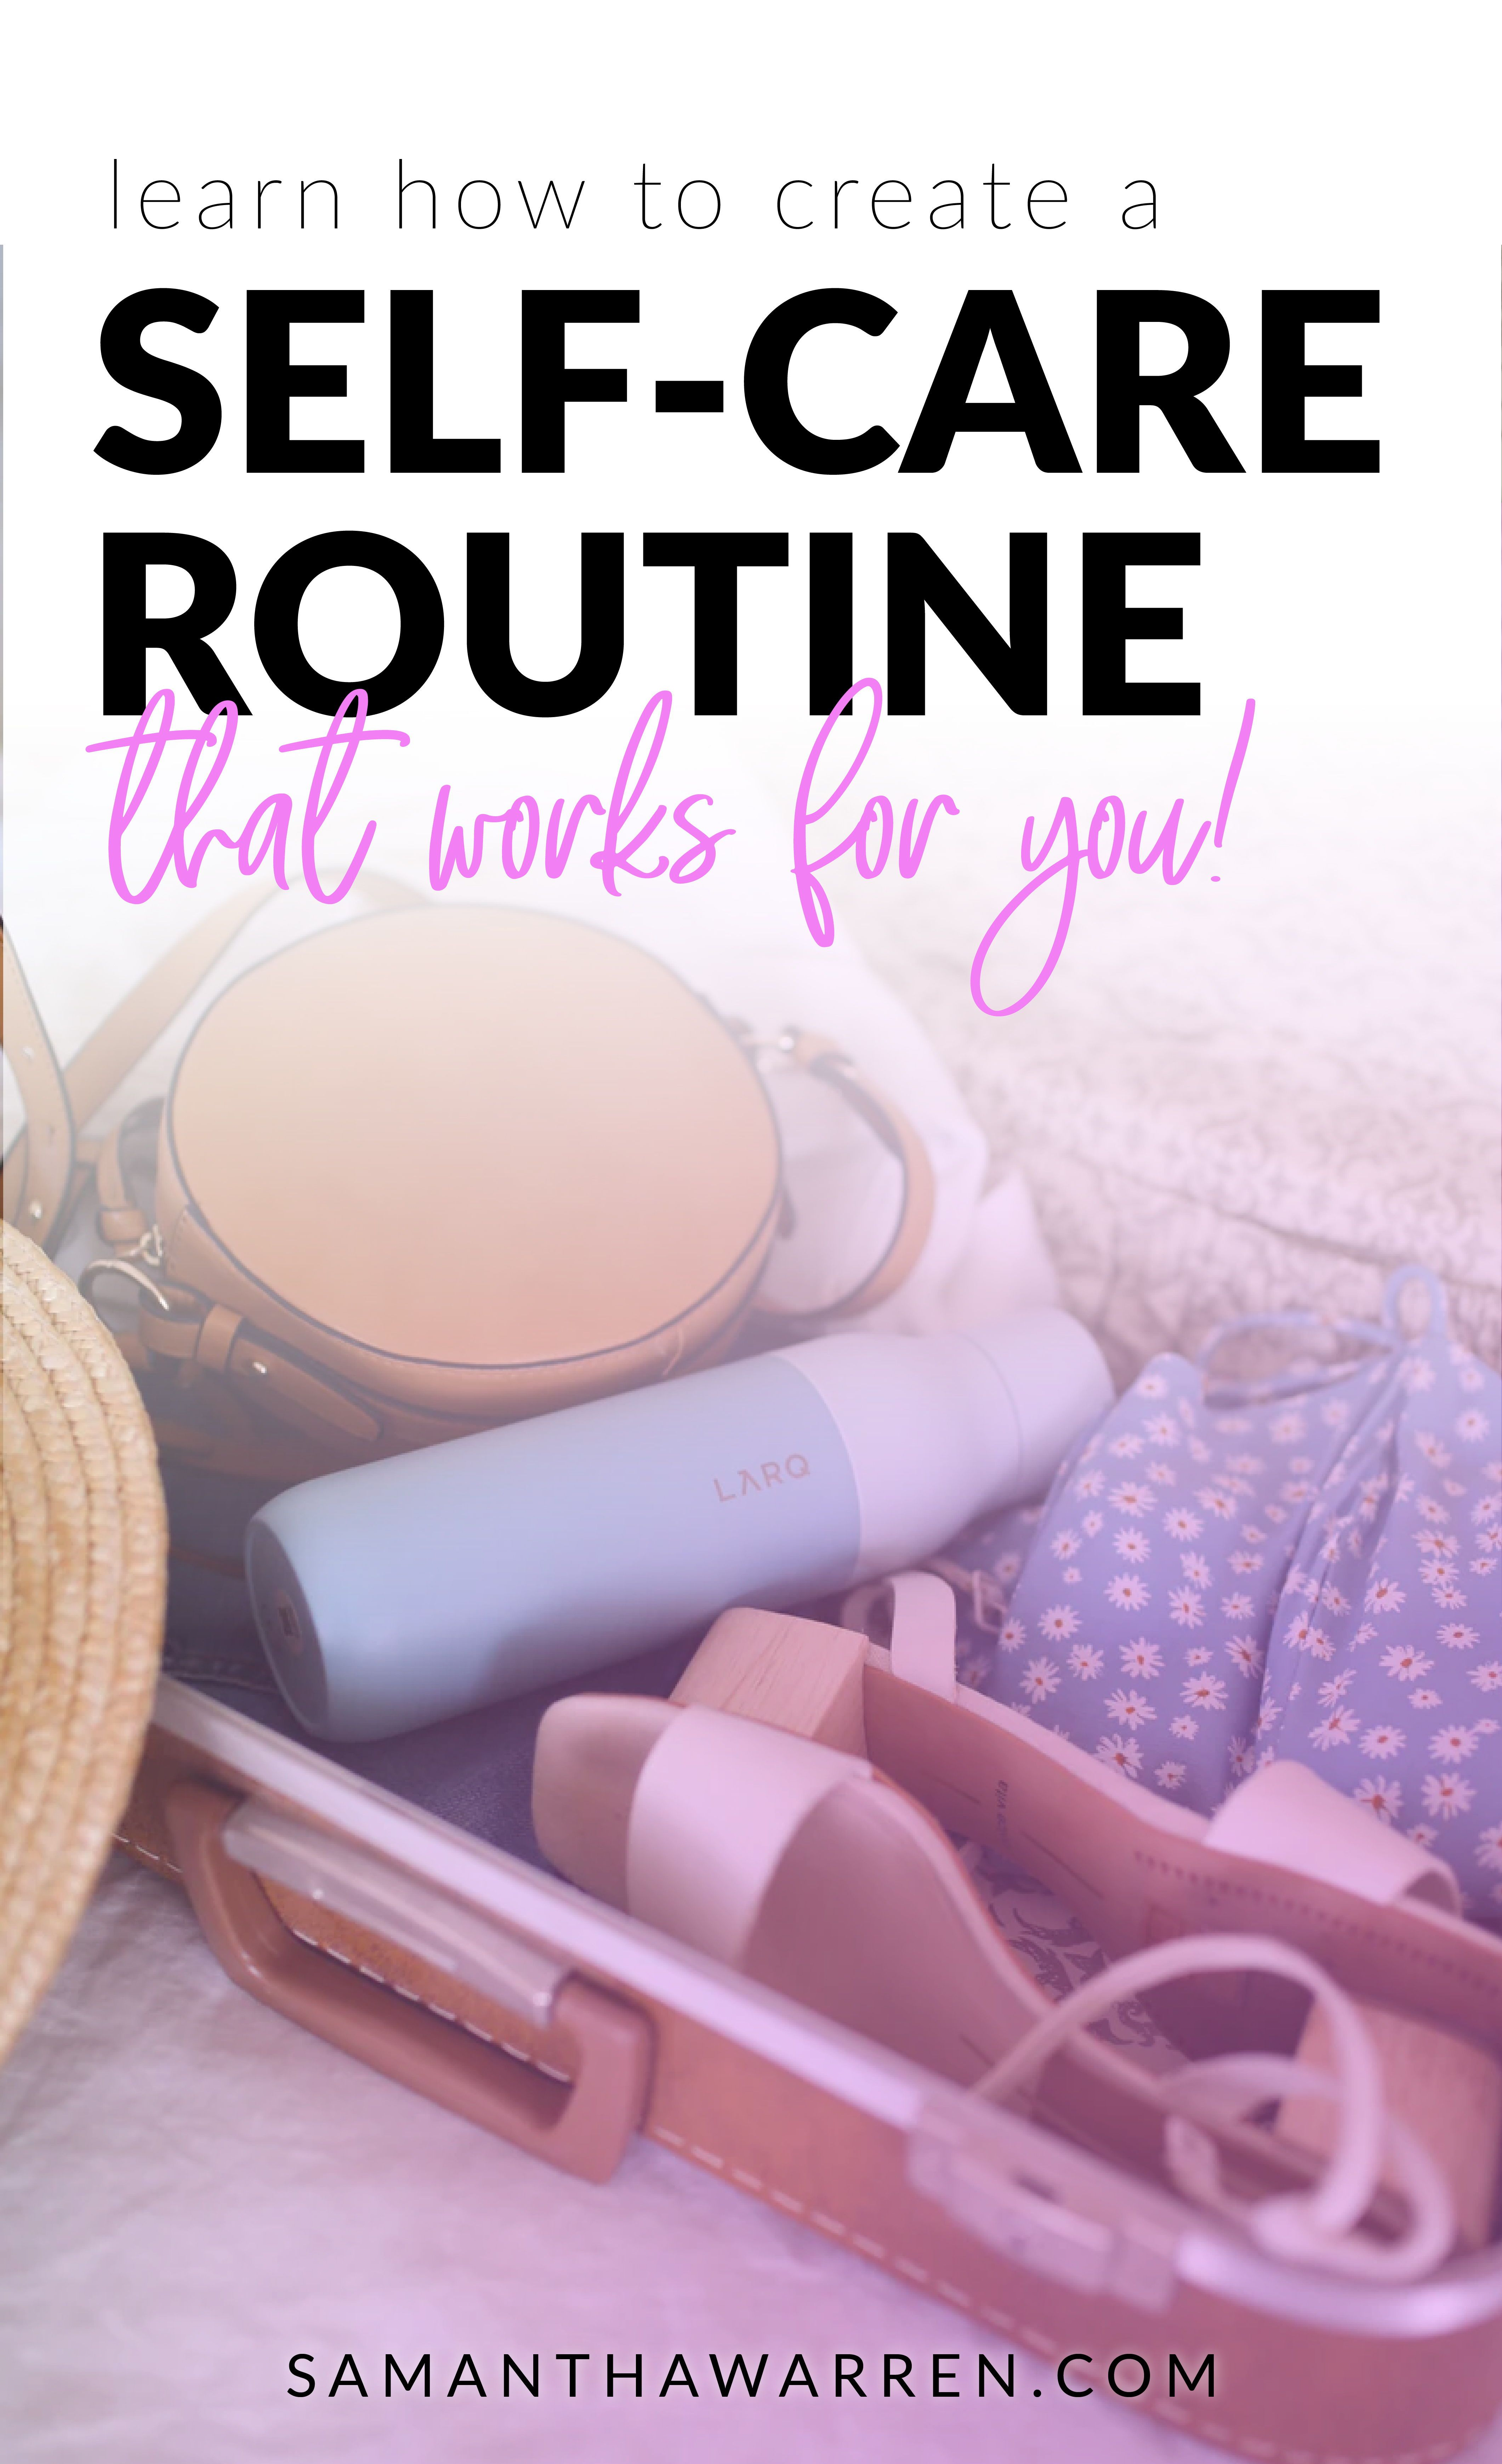 Build Your Own SelfCare Routine for 2020 + Free Printable